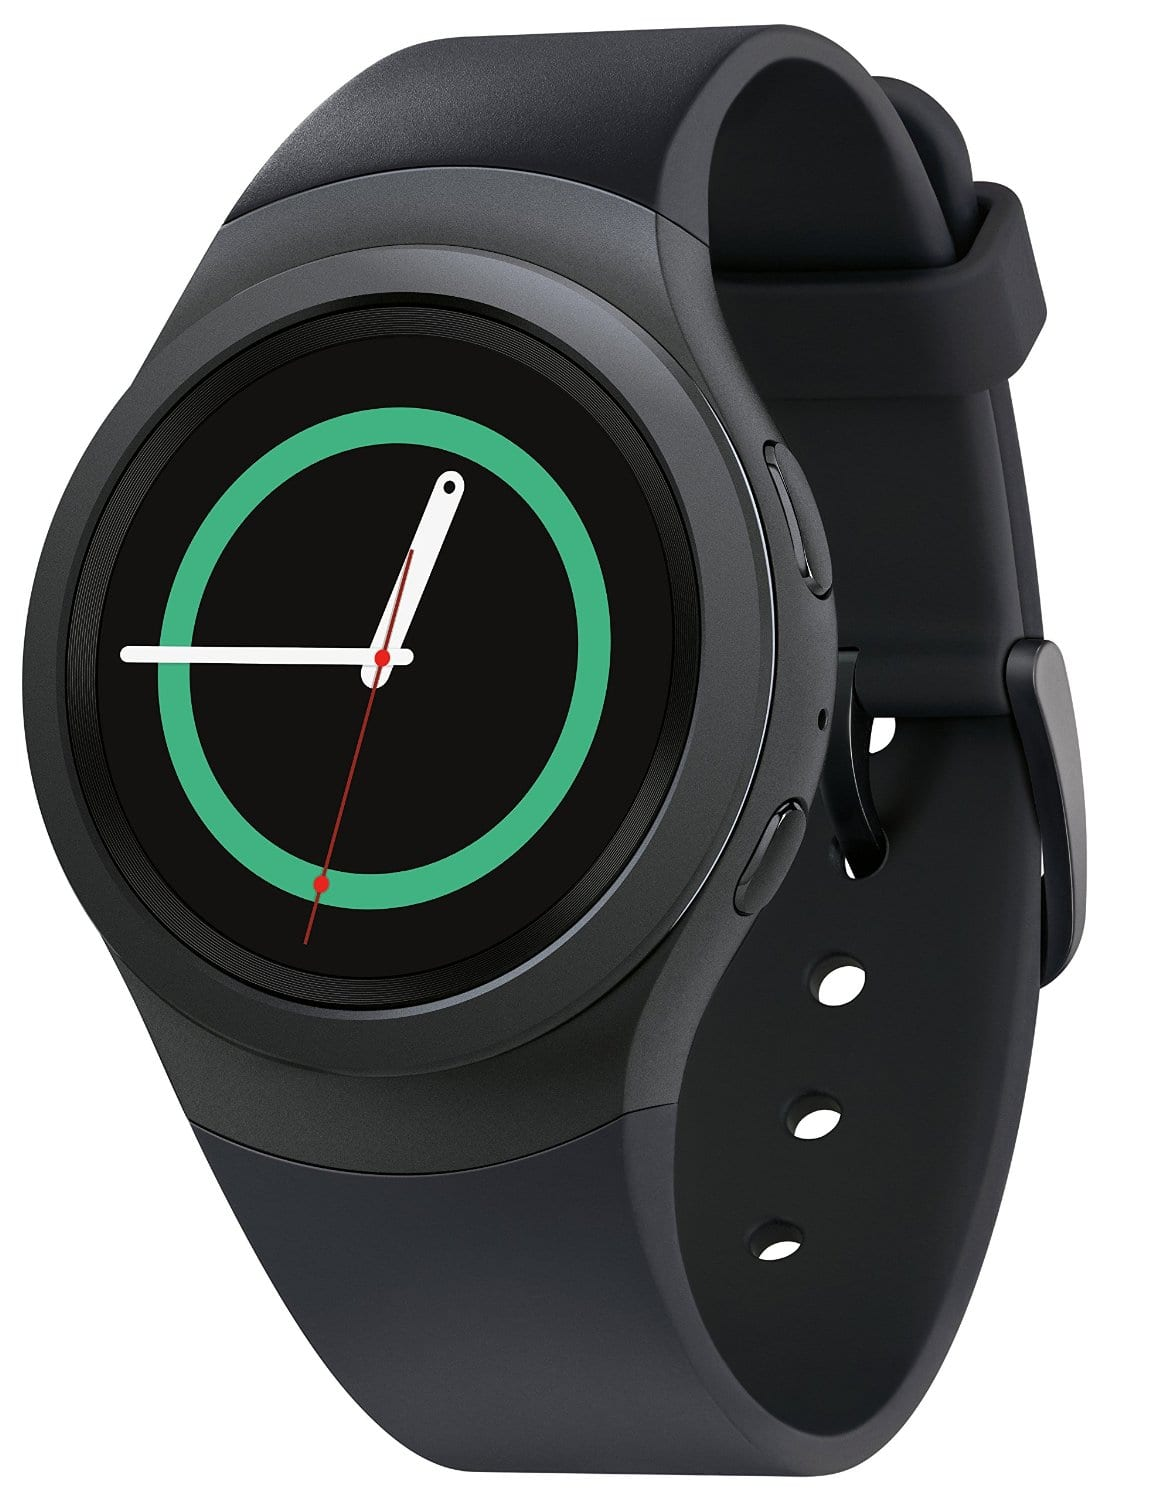 Samsung Gear S2 T-Mobile Smartwatch (Refurbished)  $100 + Free Shipping